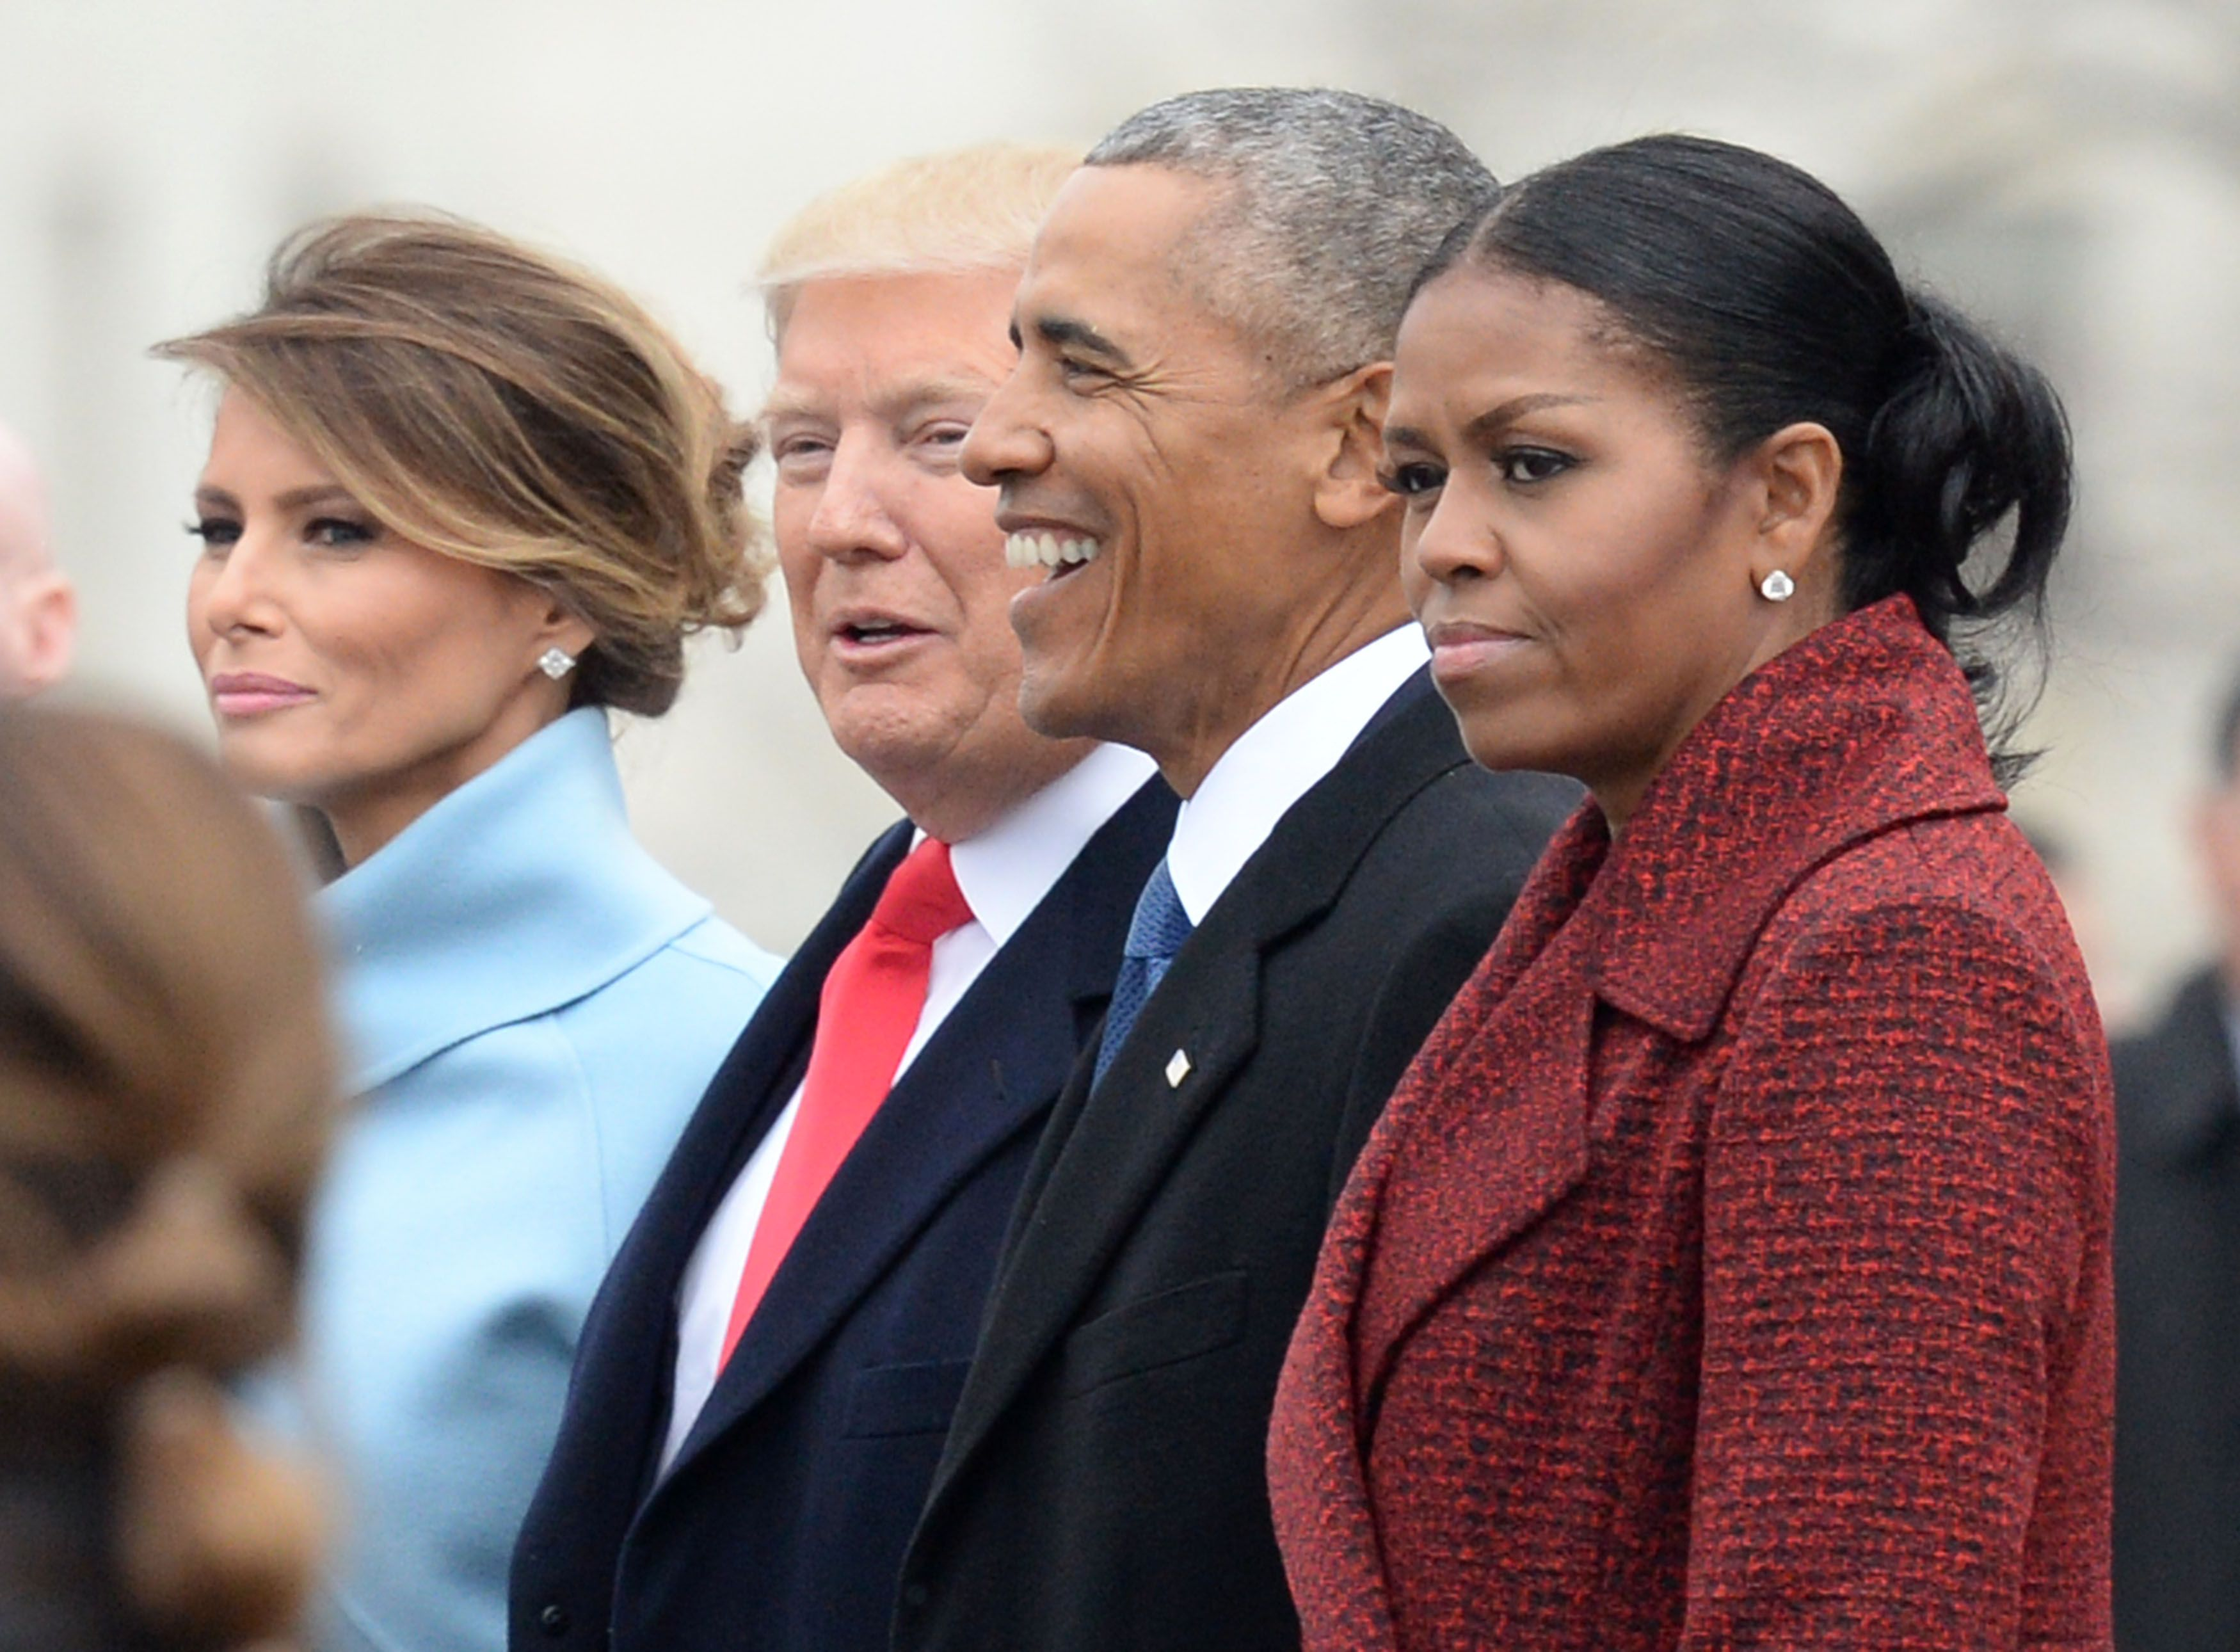 Trump's Inauguration: What Just Happened?